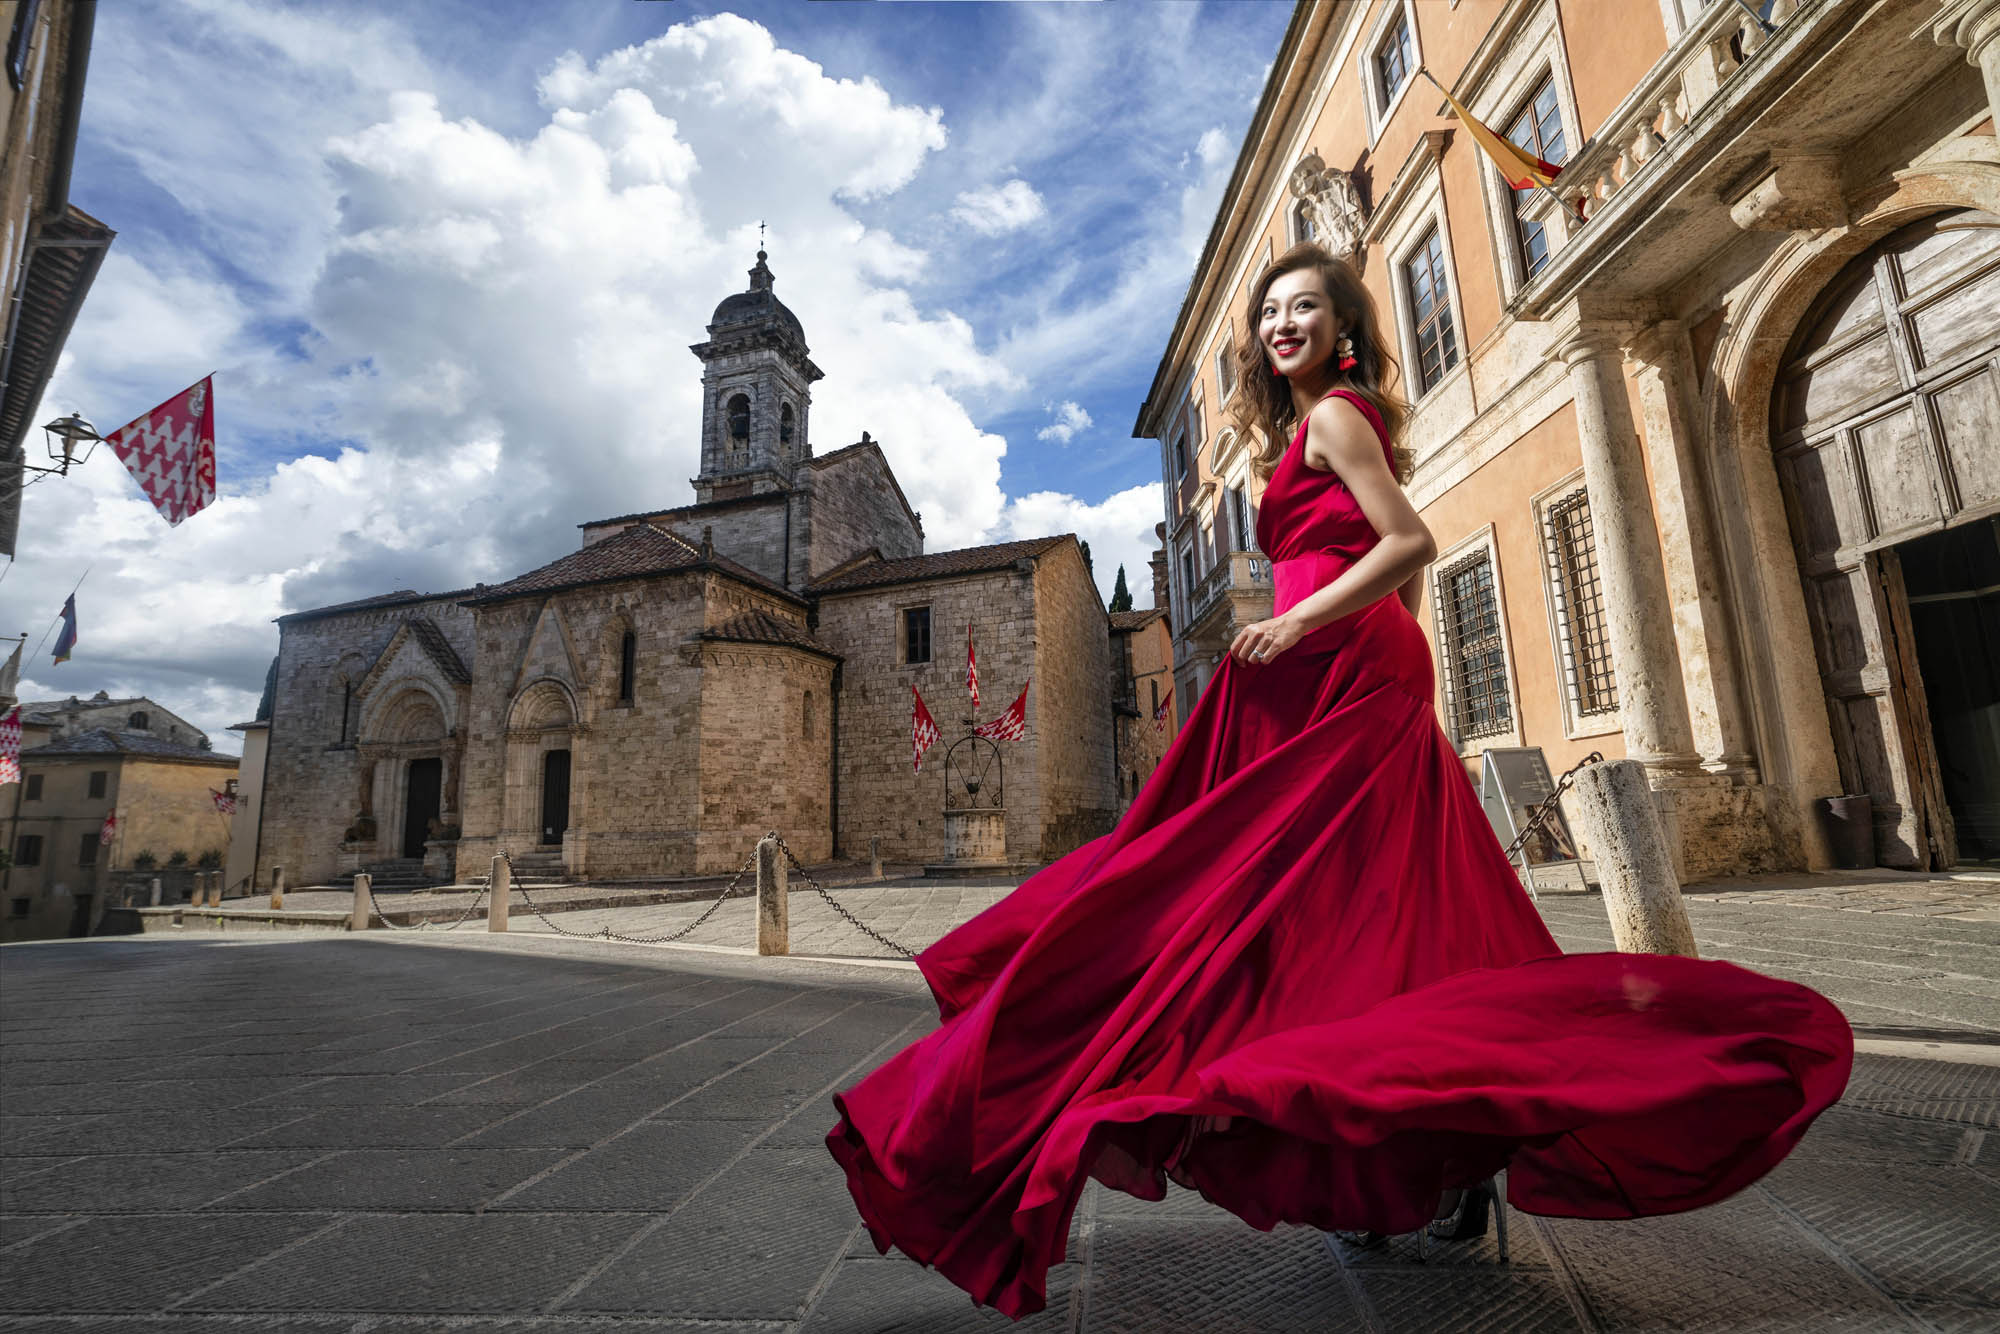 Bride in red gown swirling in historic city, by CM Leung